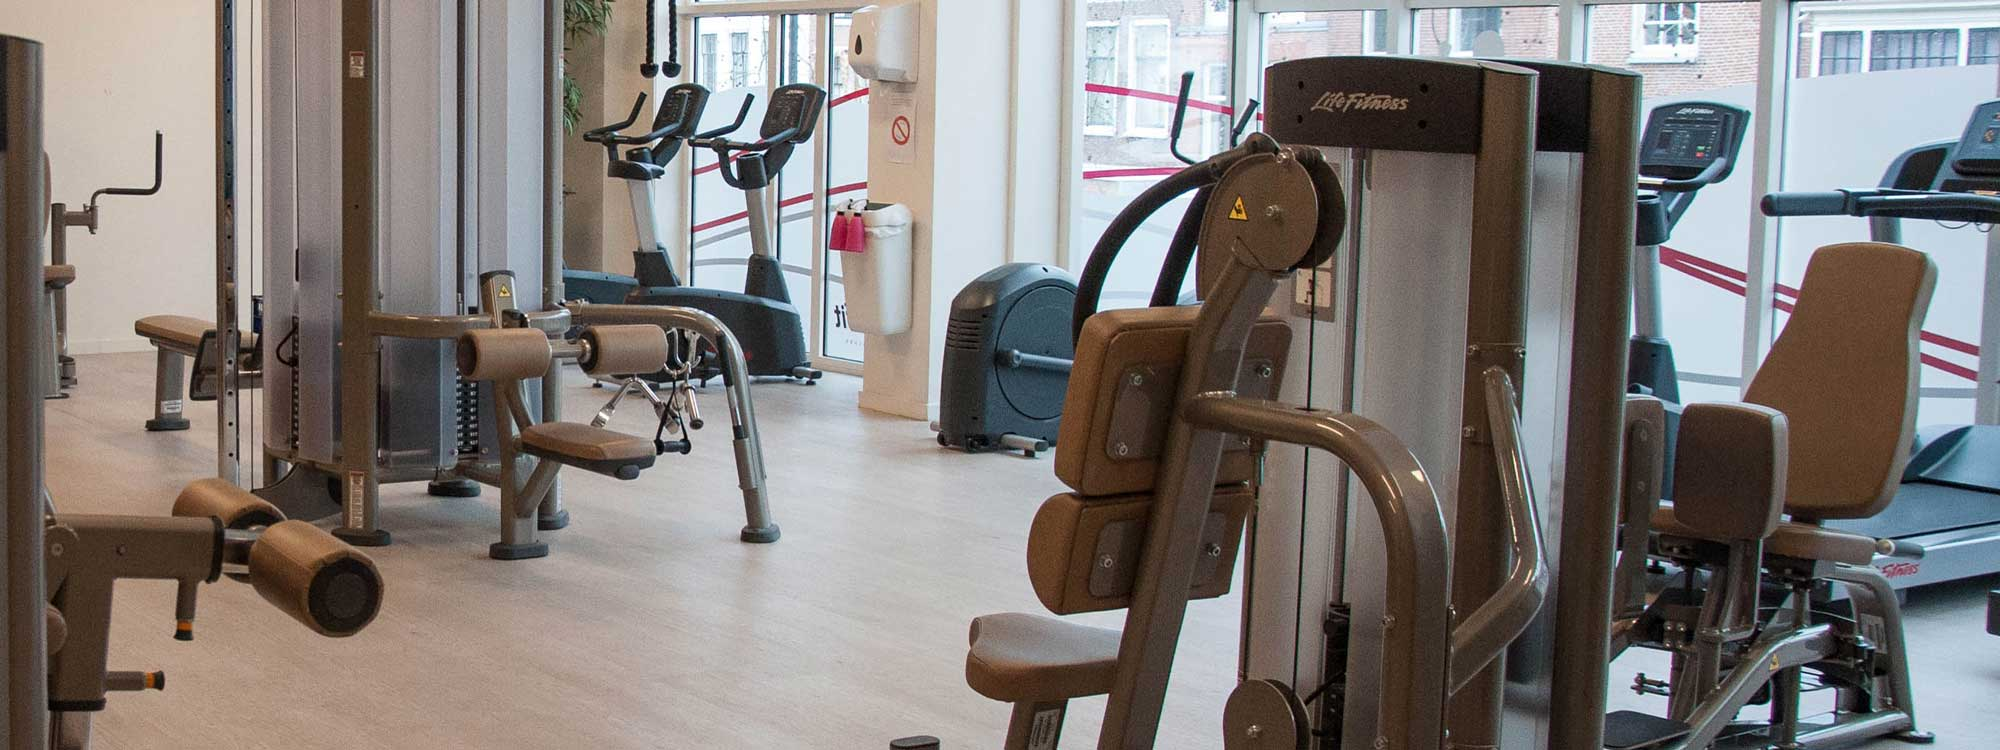 Vrouwfit Health Clubs - Hooigracht